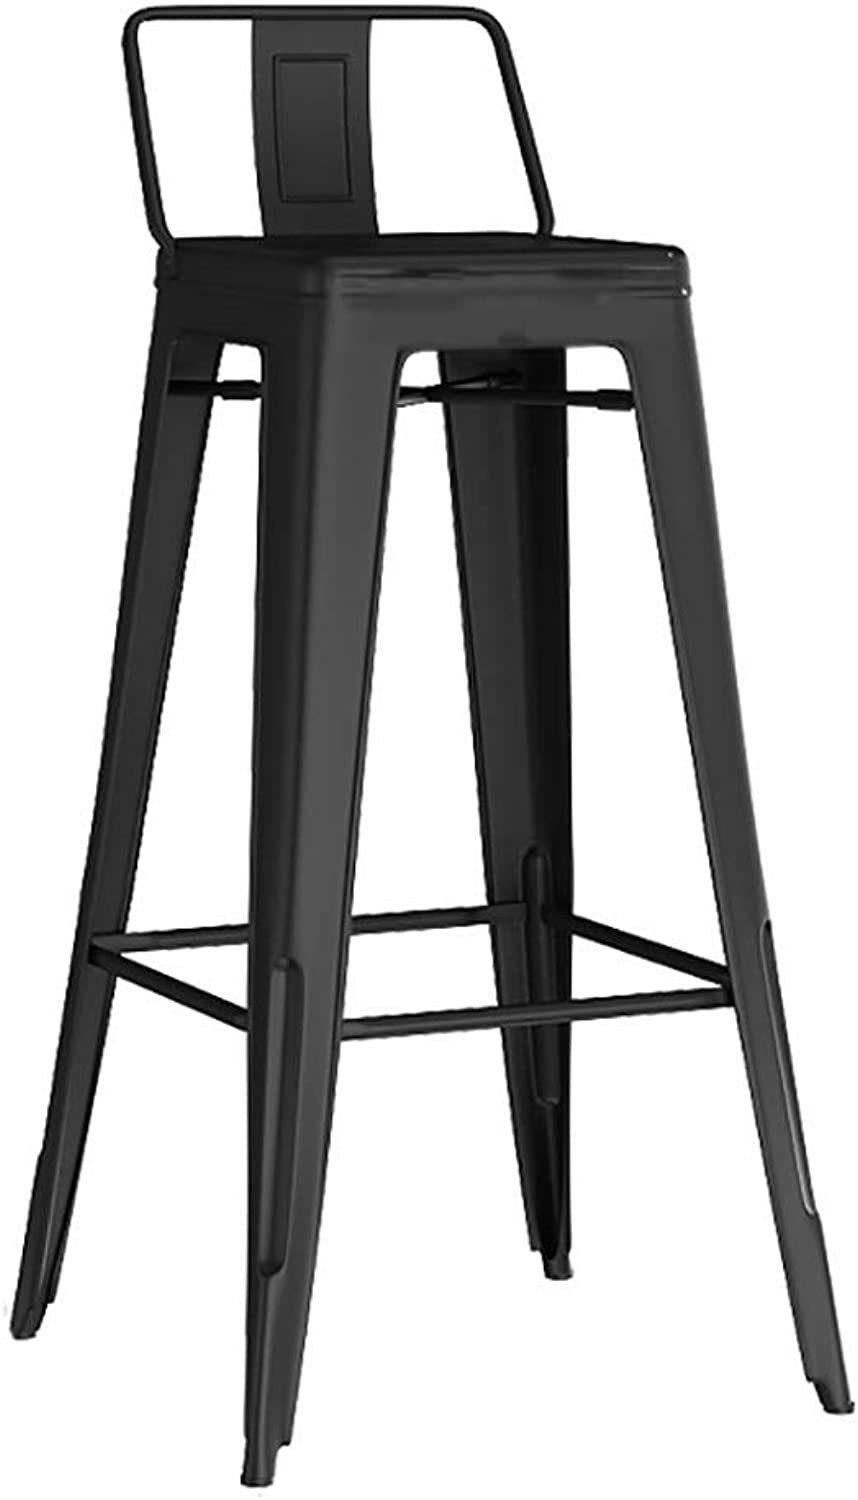 FEI Teng Iron Retro Bar Stool Bar Chair Backrest Front Lounge Chair Comfortable Dining Chair Breakfast Stool, Black, Sitting Height 76CM